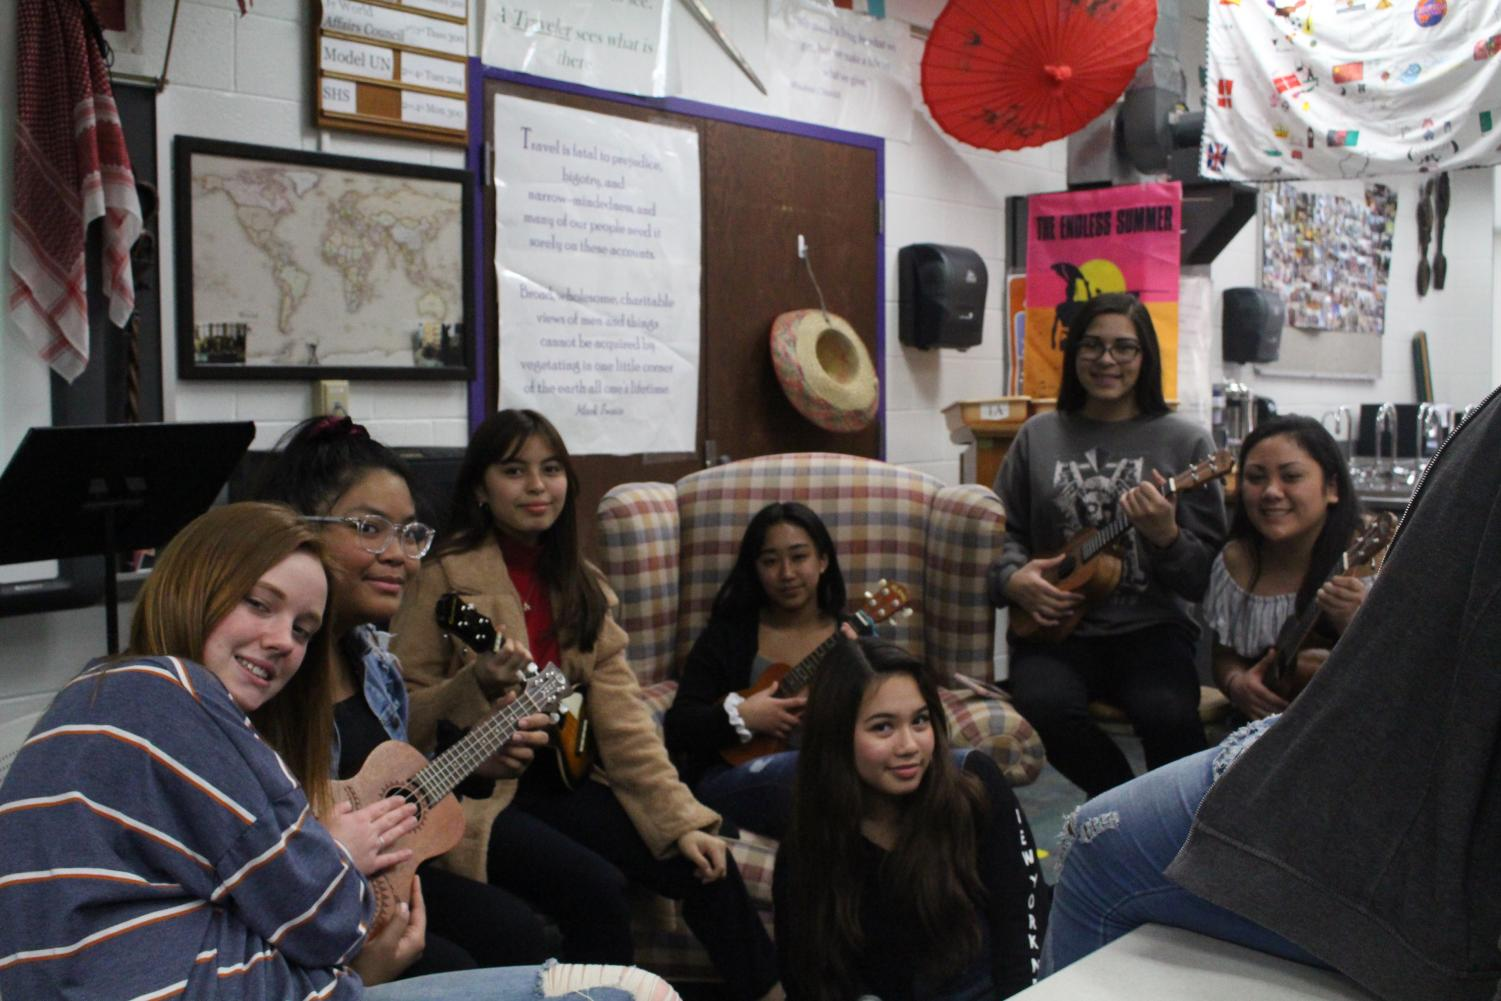 Tallwood's Ukulele Army practicing for the Global Gala.